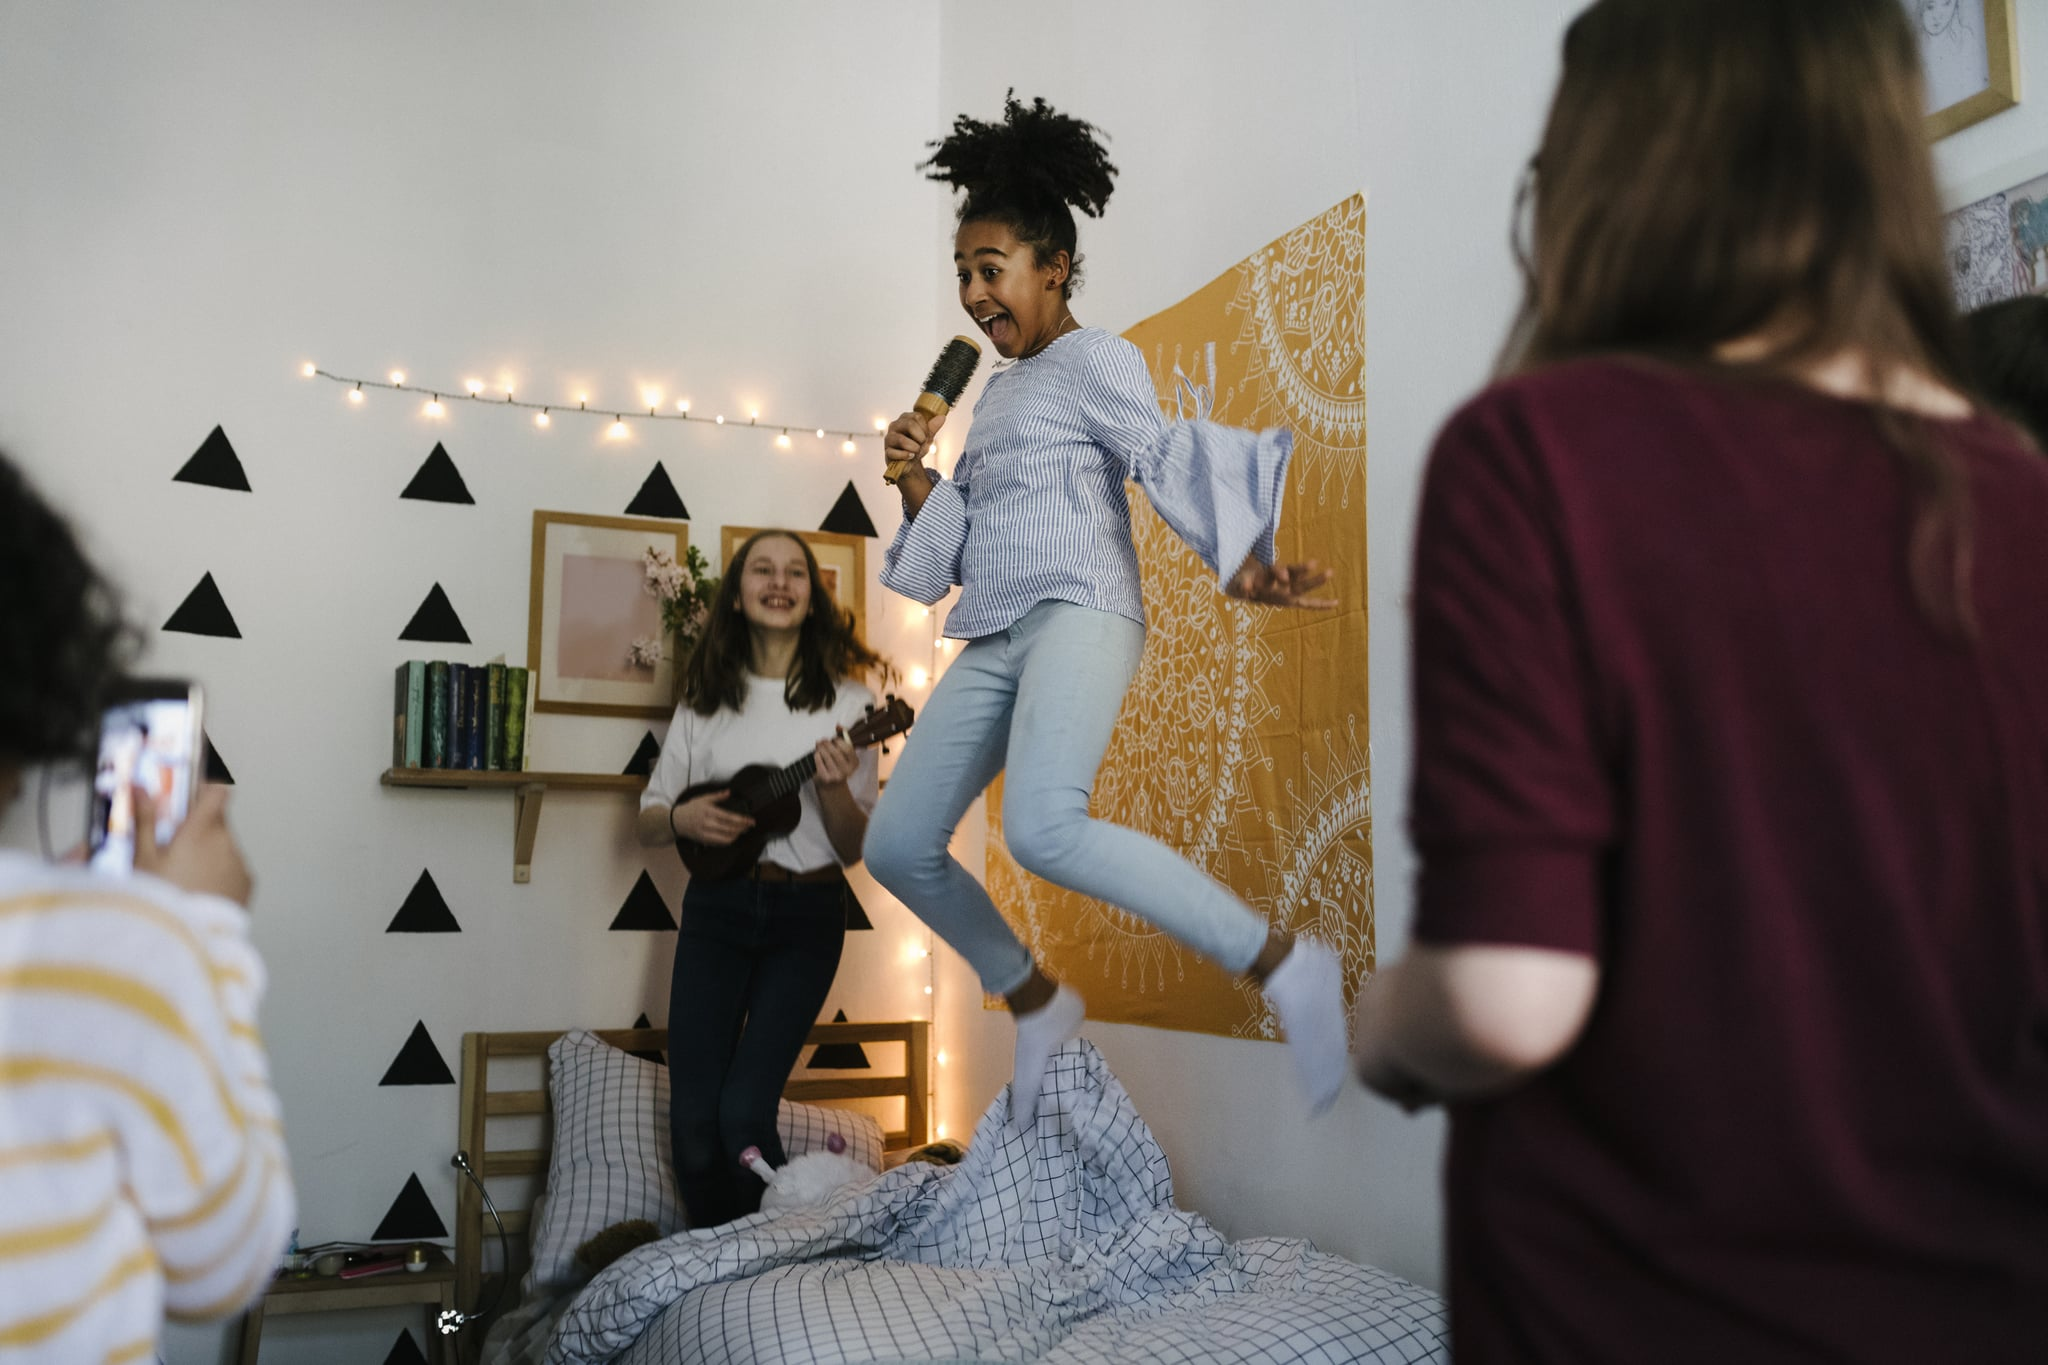 Black tween jumping in the air while singing into hairbrushes at slumber party.